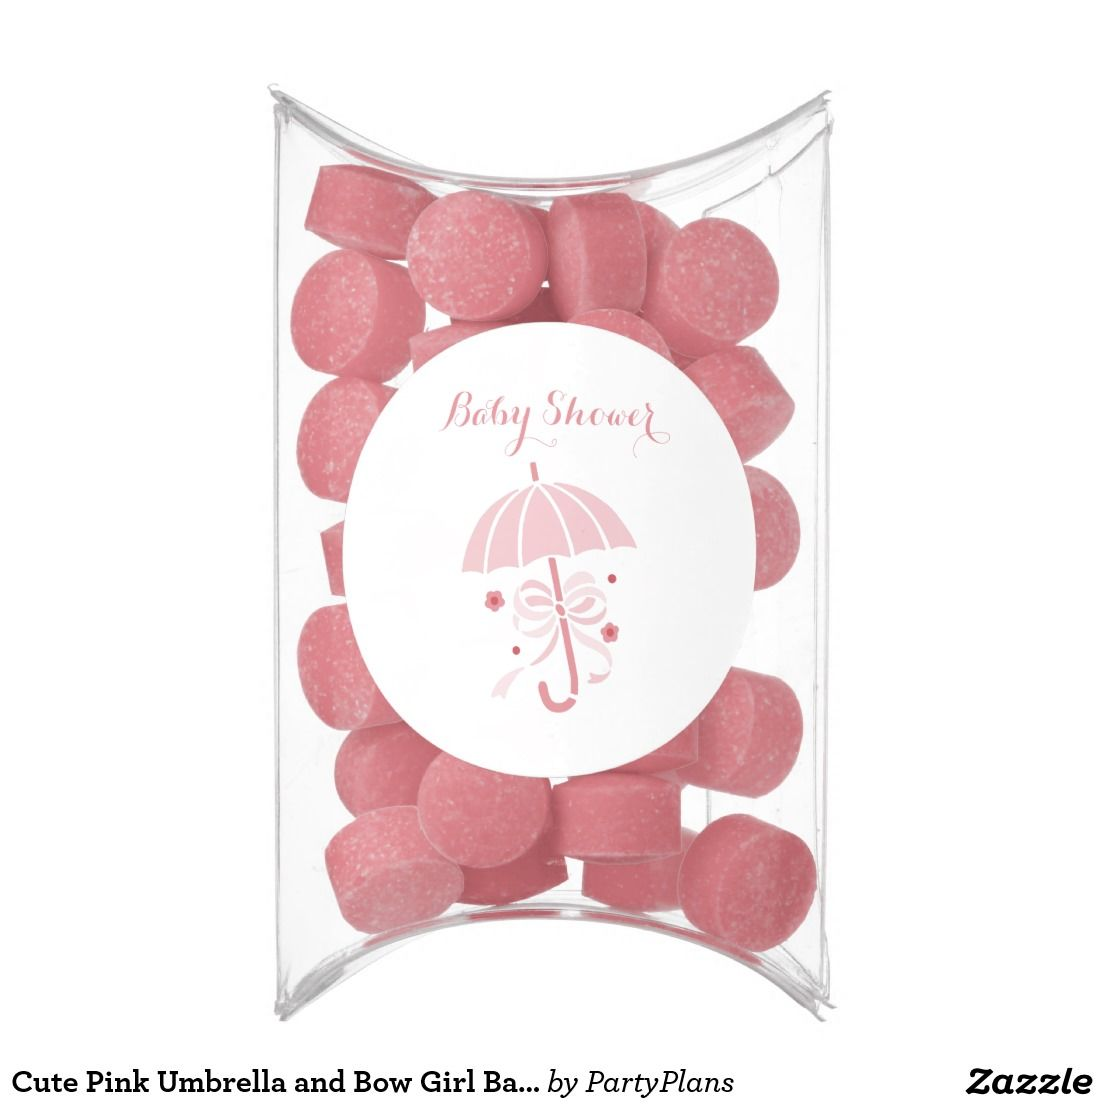 Cute Pink Umbrella and Bow Girl Baby Shower Chewing Gum Favors